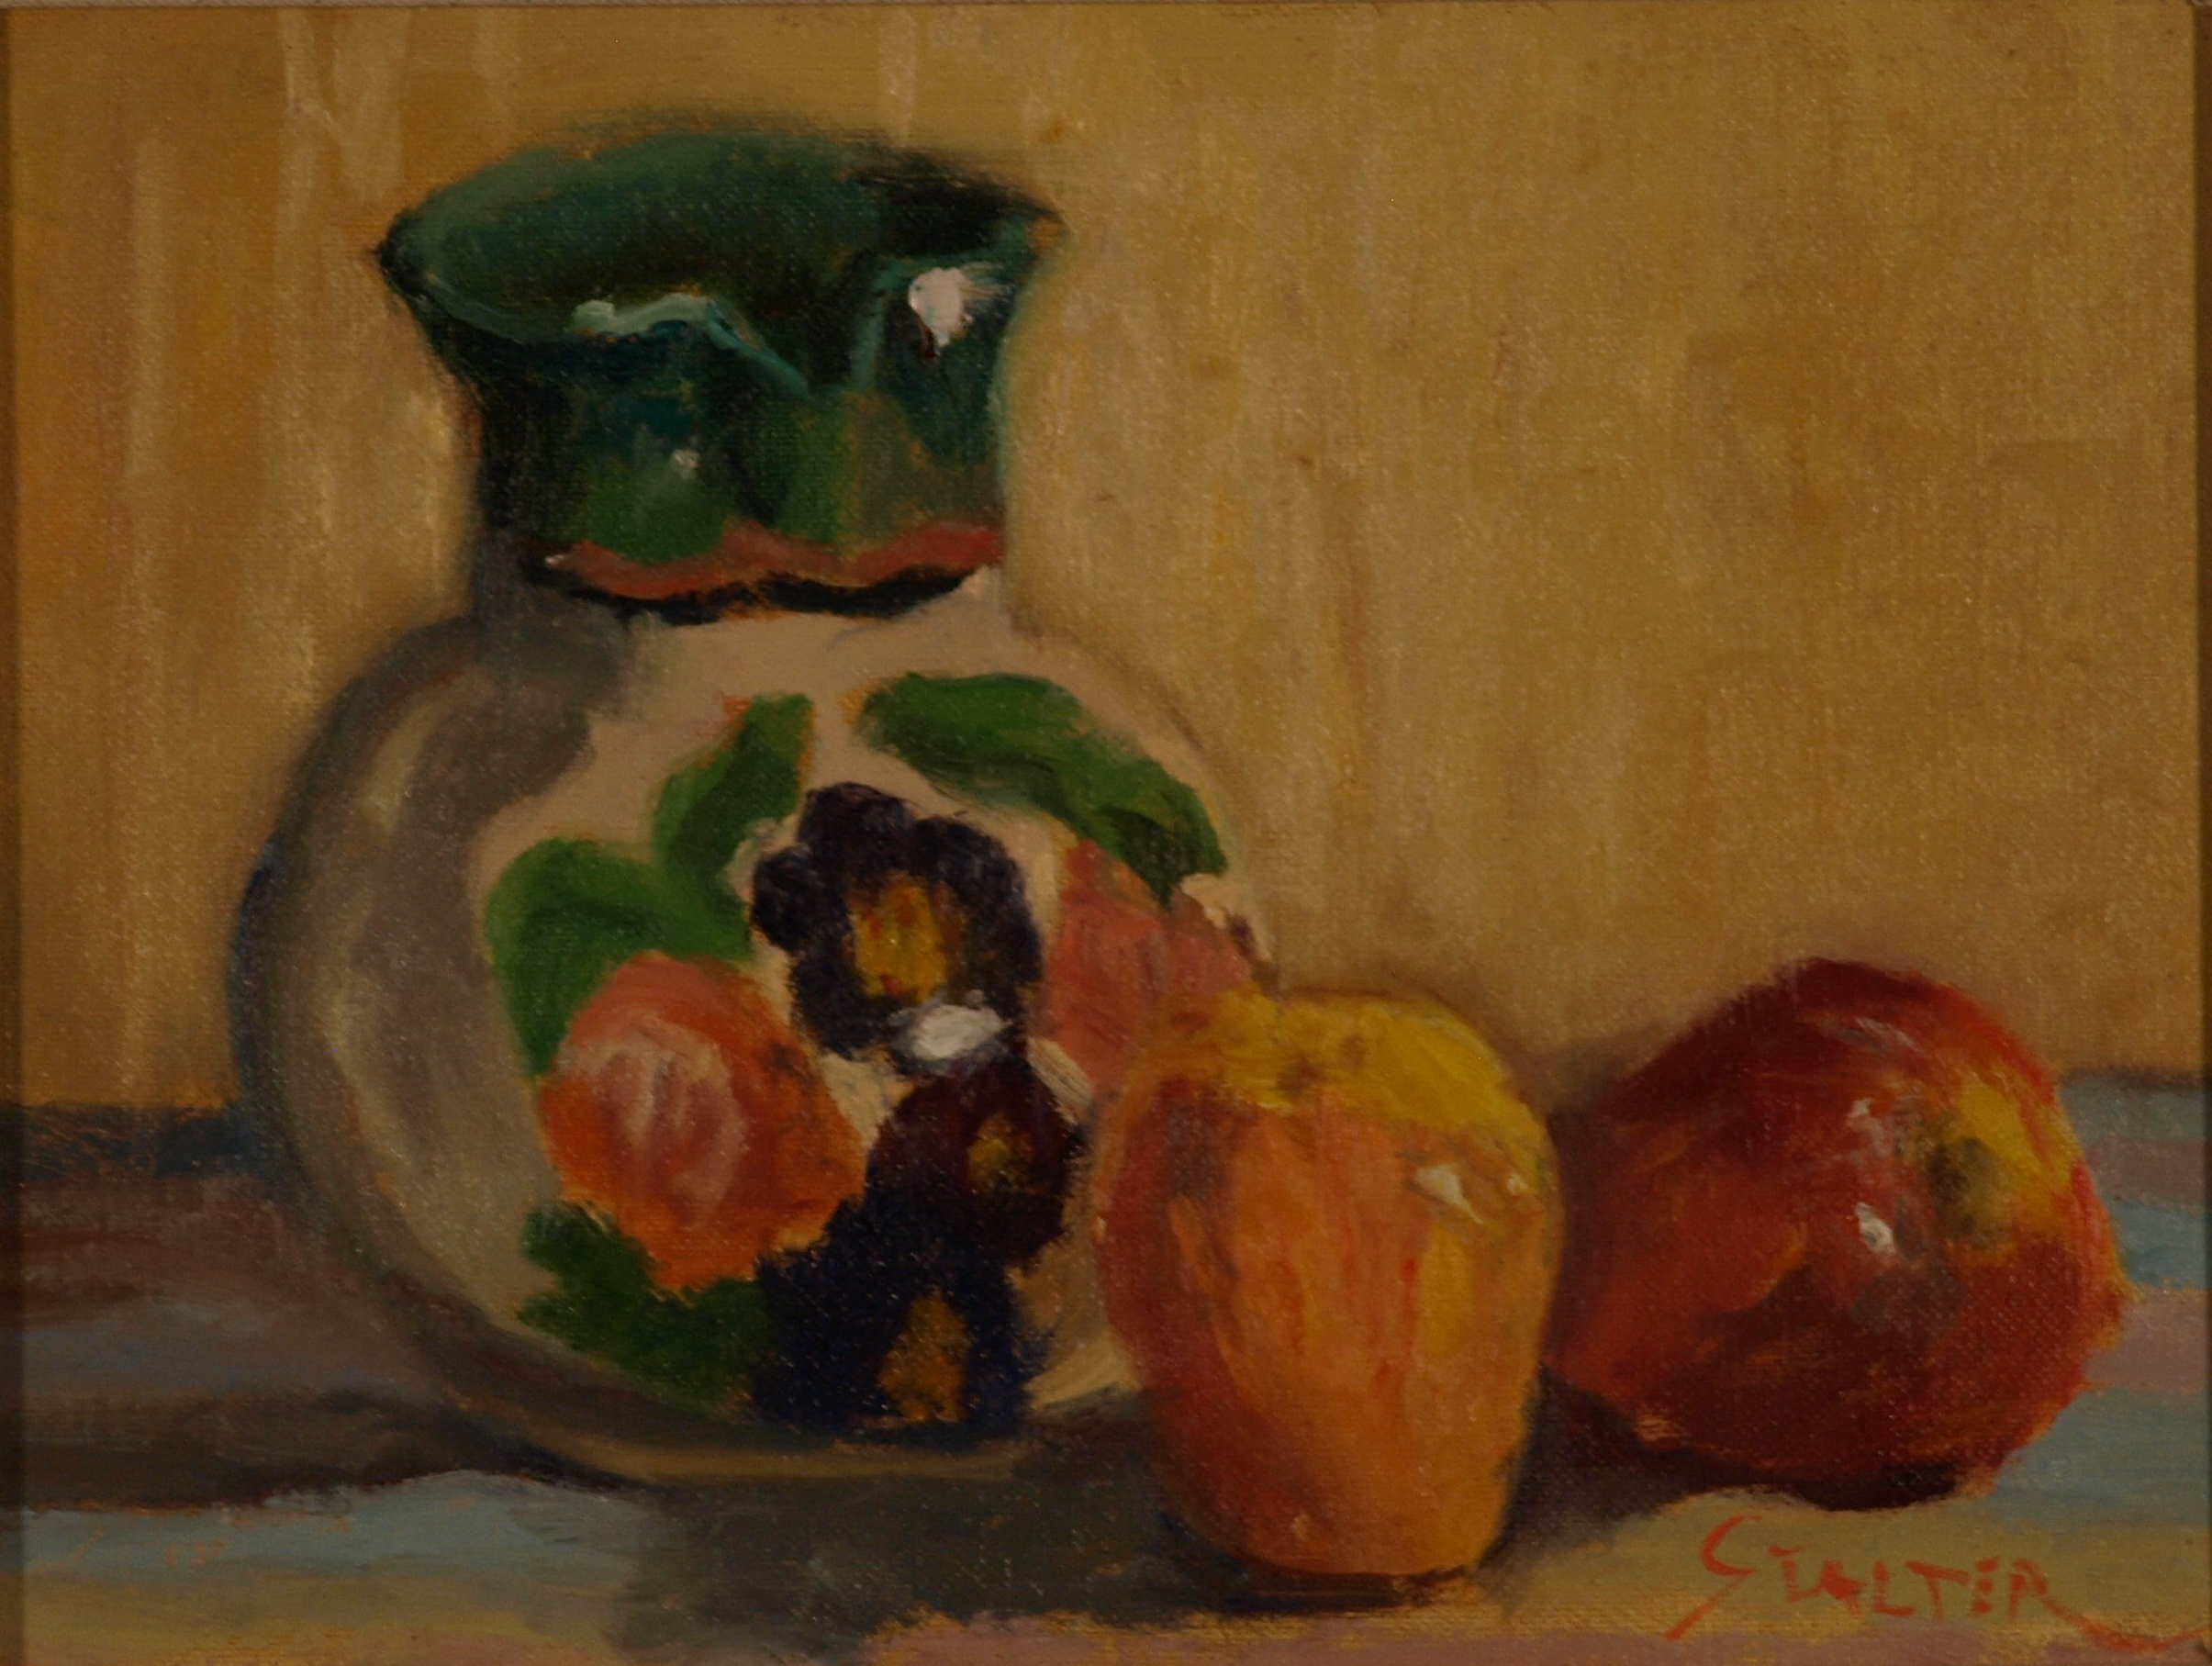 Still Life - Flowered Pitcher, Oil on Canvas on Panel, 9 x 12 Inches, by Richard Stalter, $225